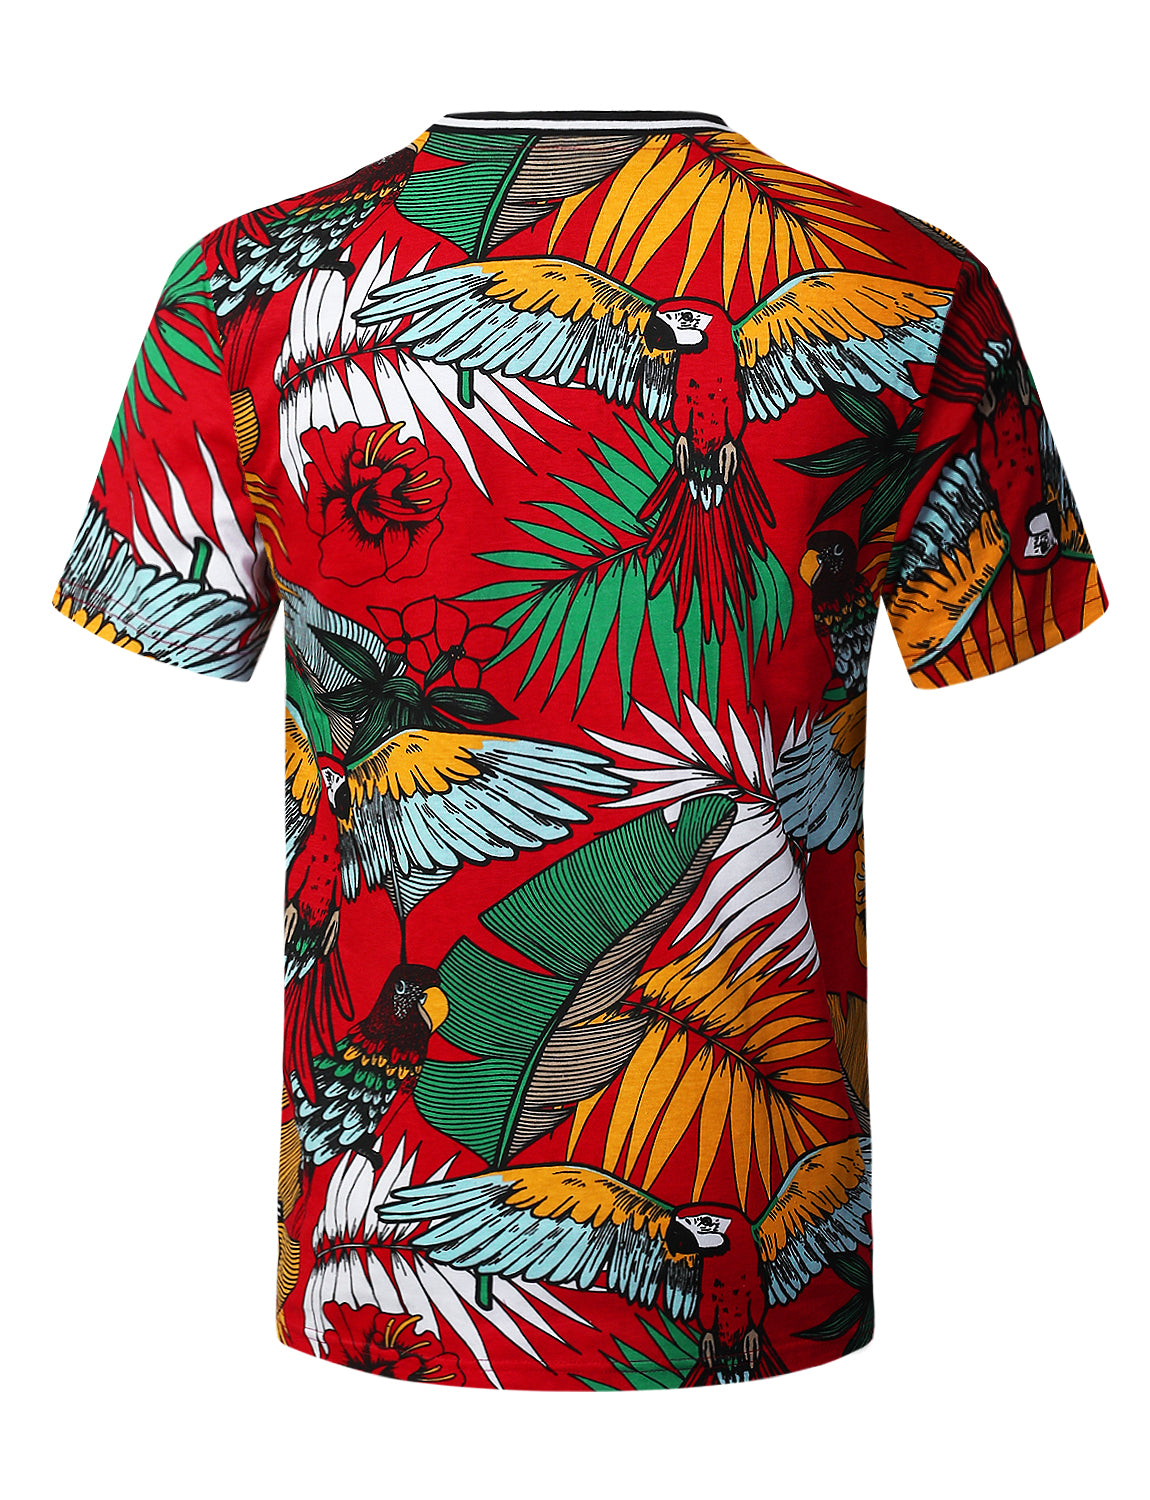 RED Tropical Parrot Print T-shirt - URBANCREWS